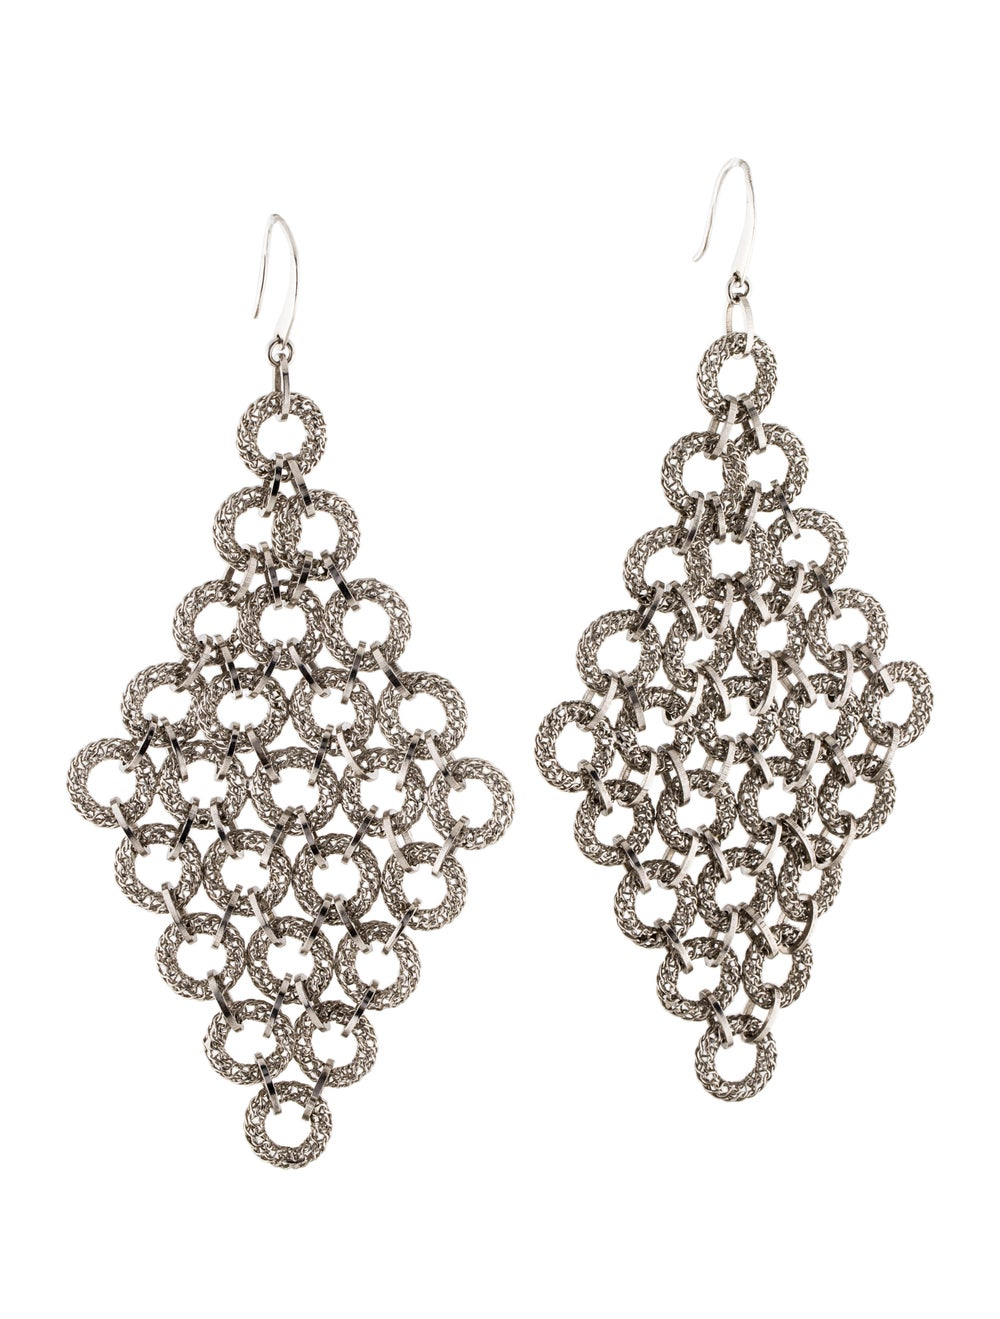 Tateossian Chandelier Earrings silver - image 3